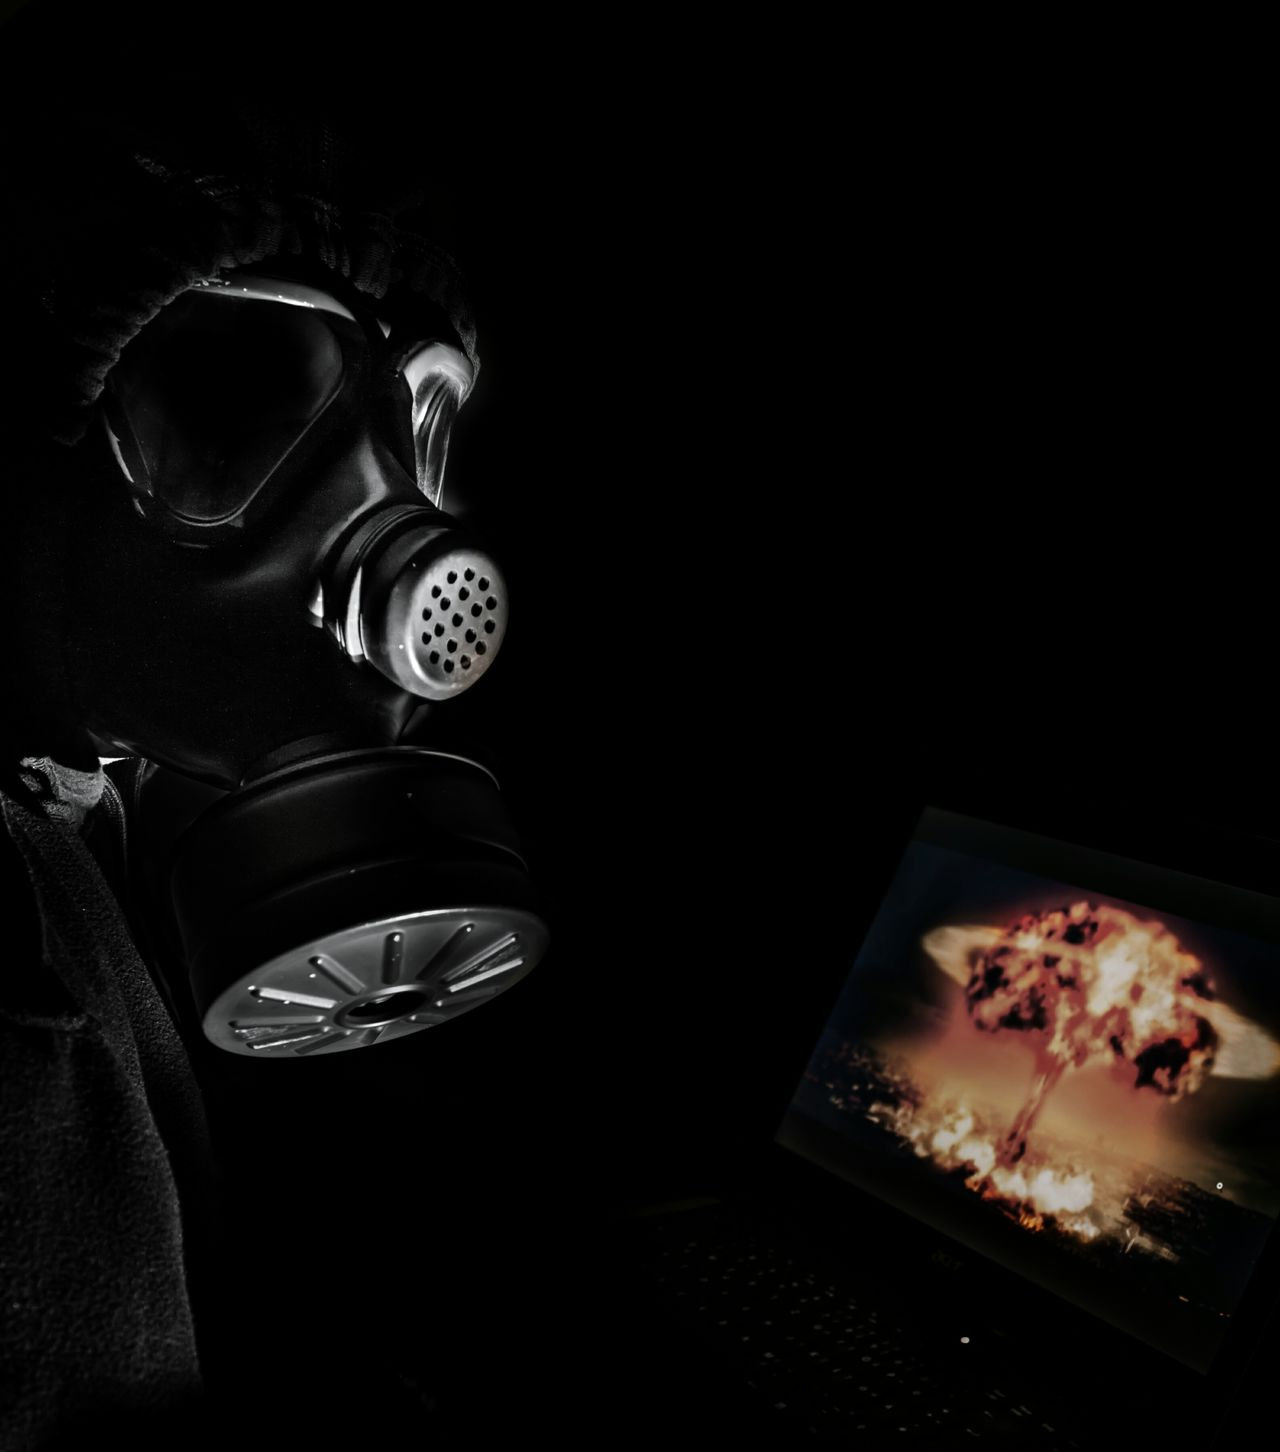 Technology Black Background Gasmask Endoftheworld Watch The World Go Up In Smoke Atomic Explosion